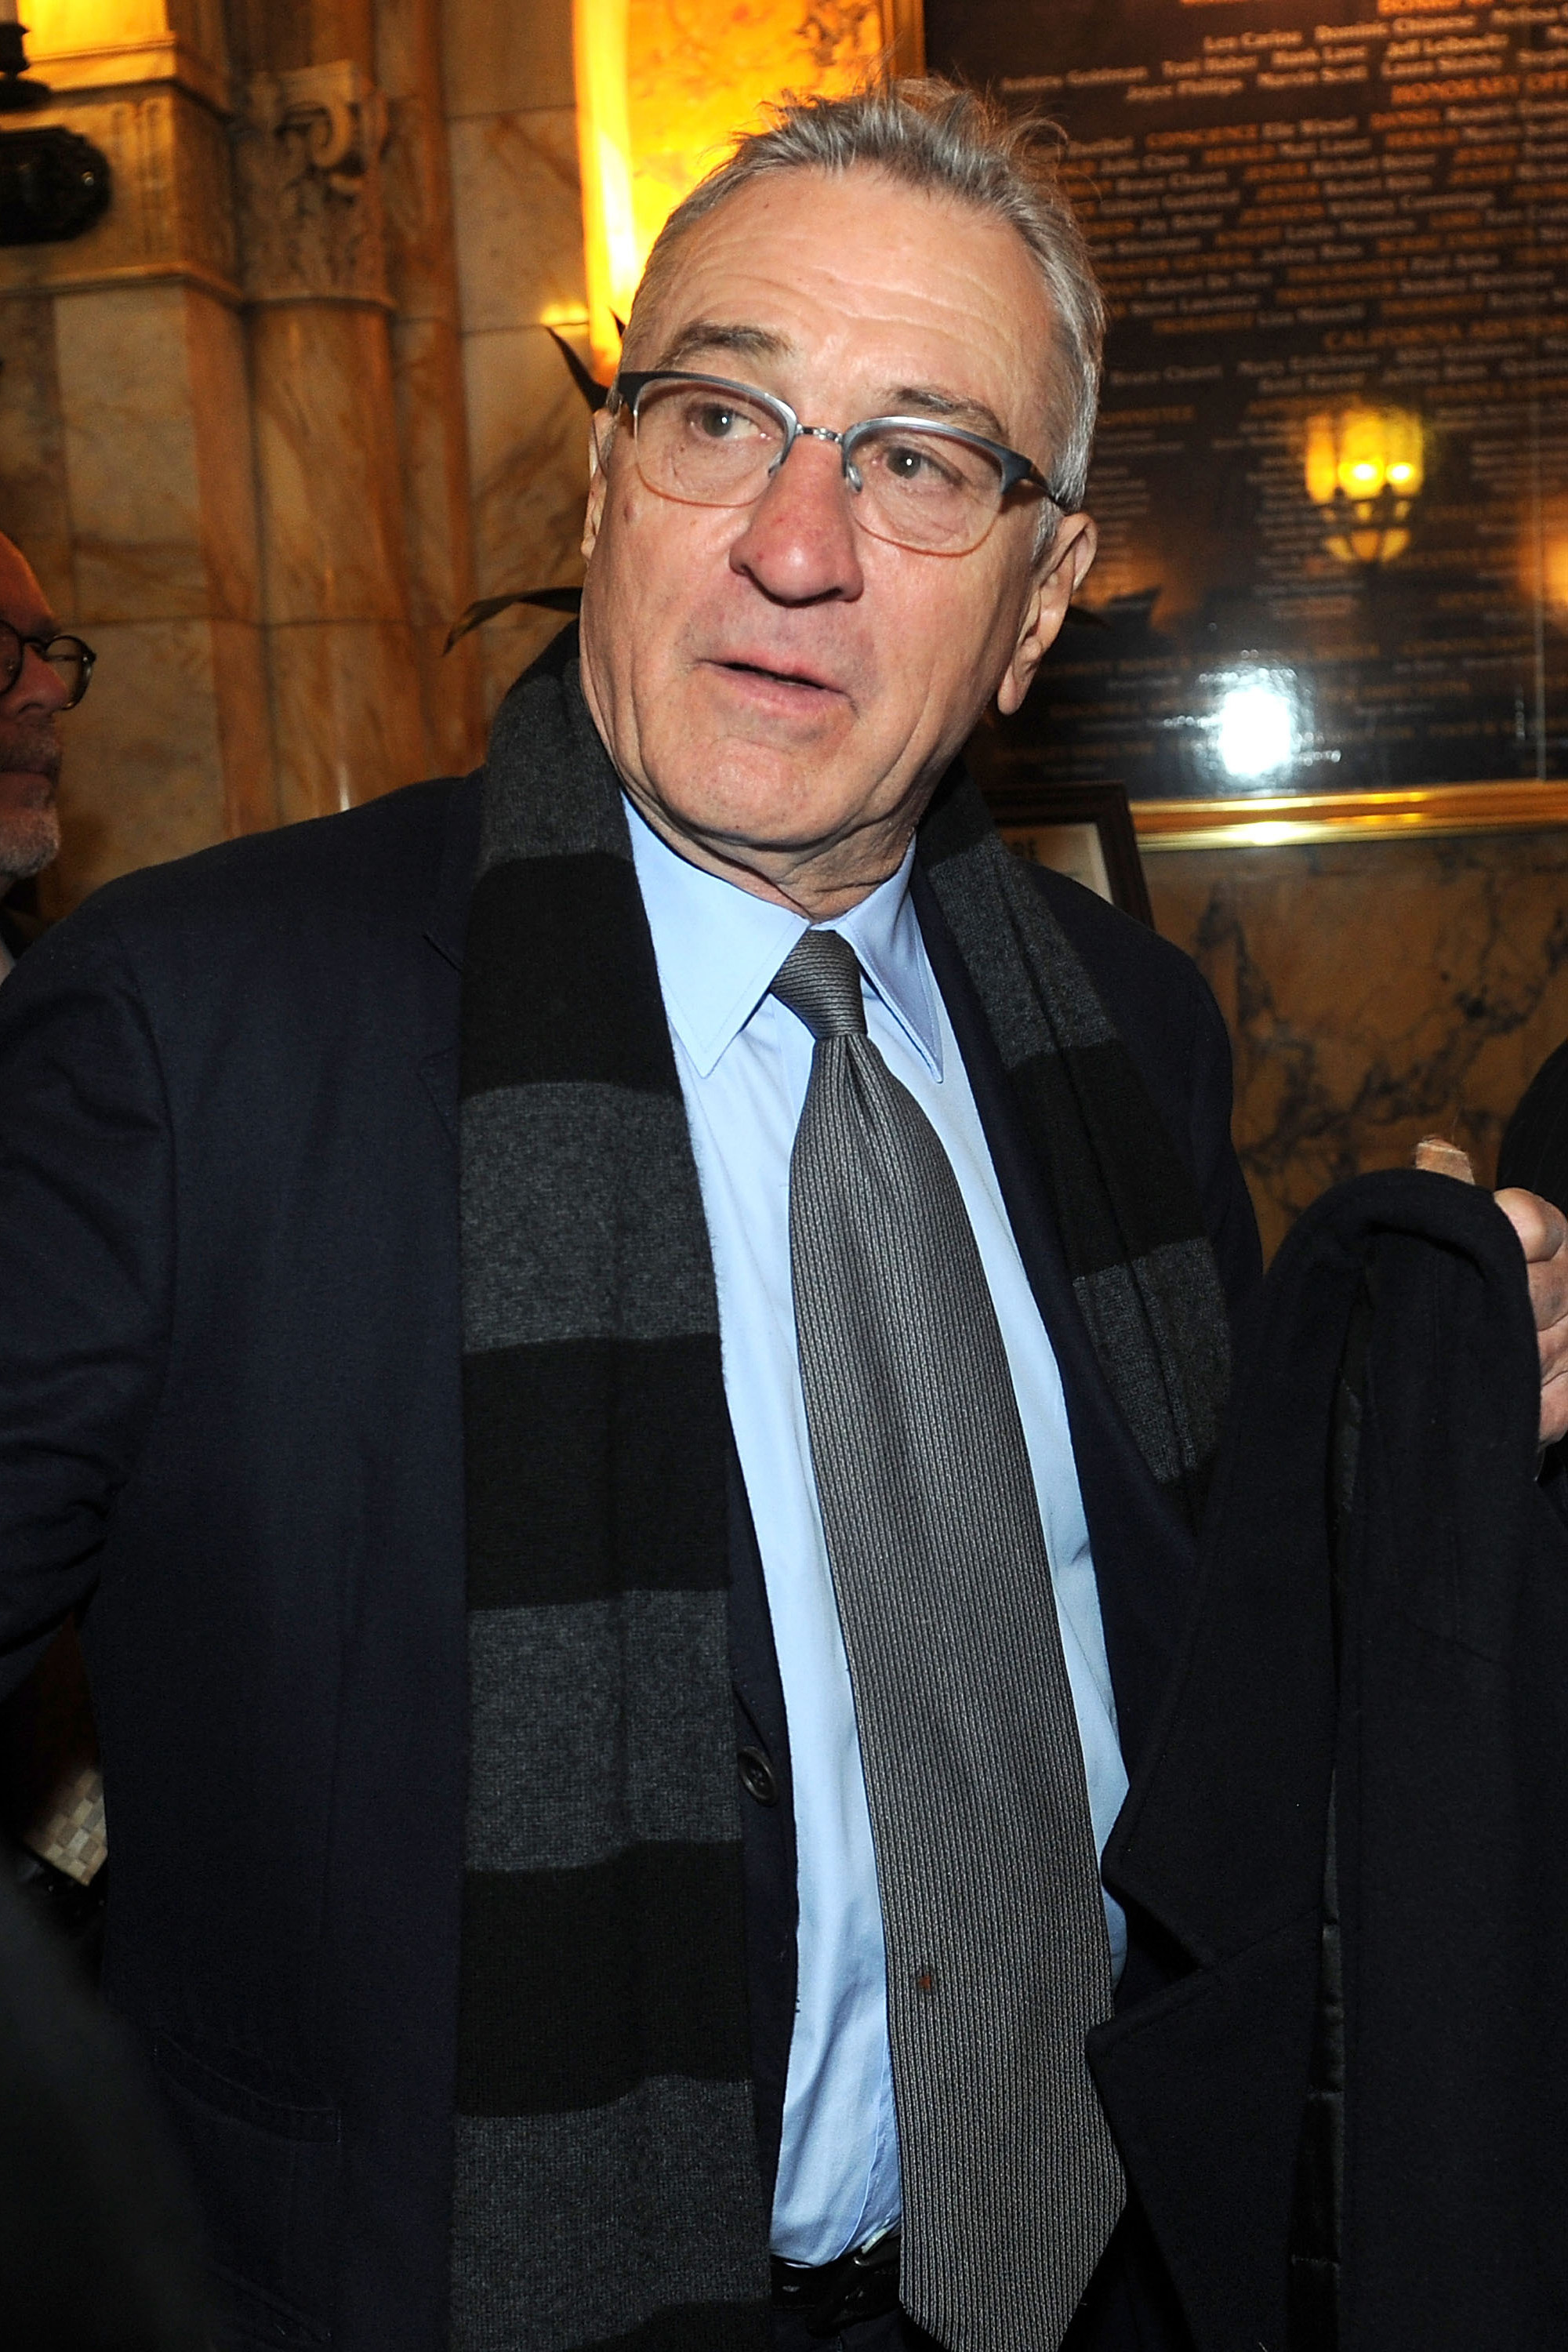 Robert De Niro attends Jerry Lewis's 90th Birthday at the Friars Club in New York on April 8, 2016.